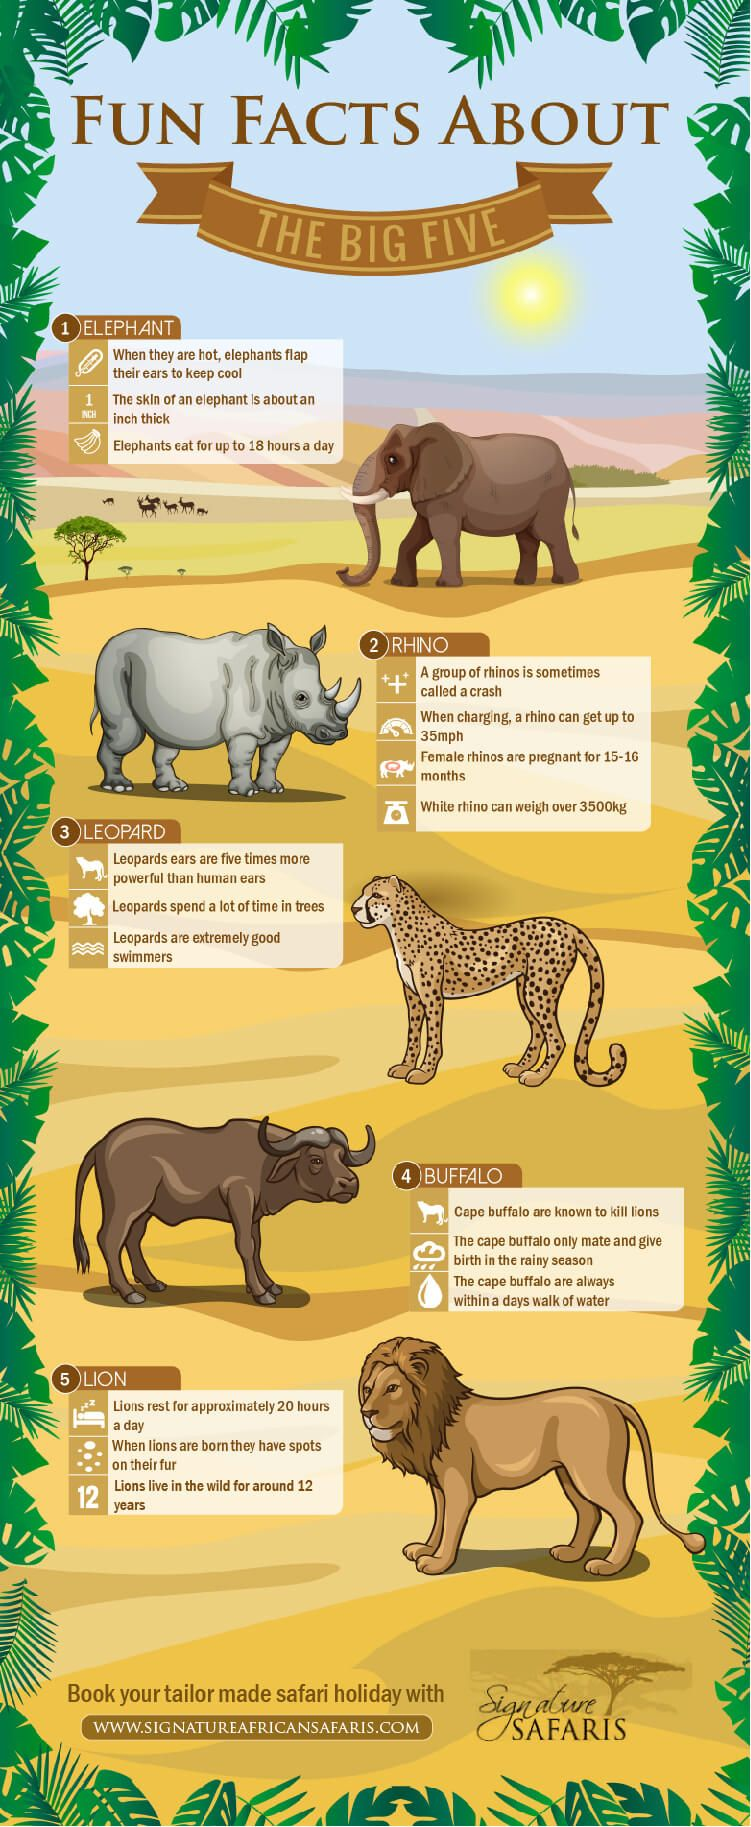 facts about the big 5 facts about the big five big five animals facts the big five facts